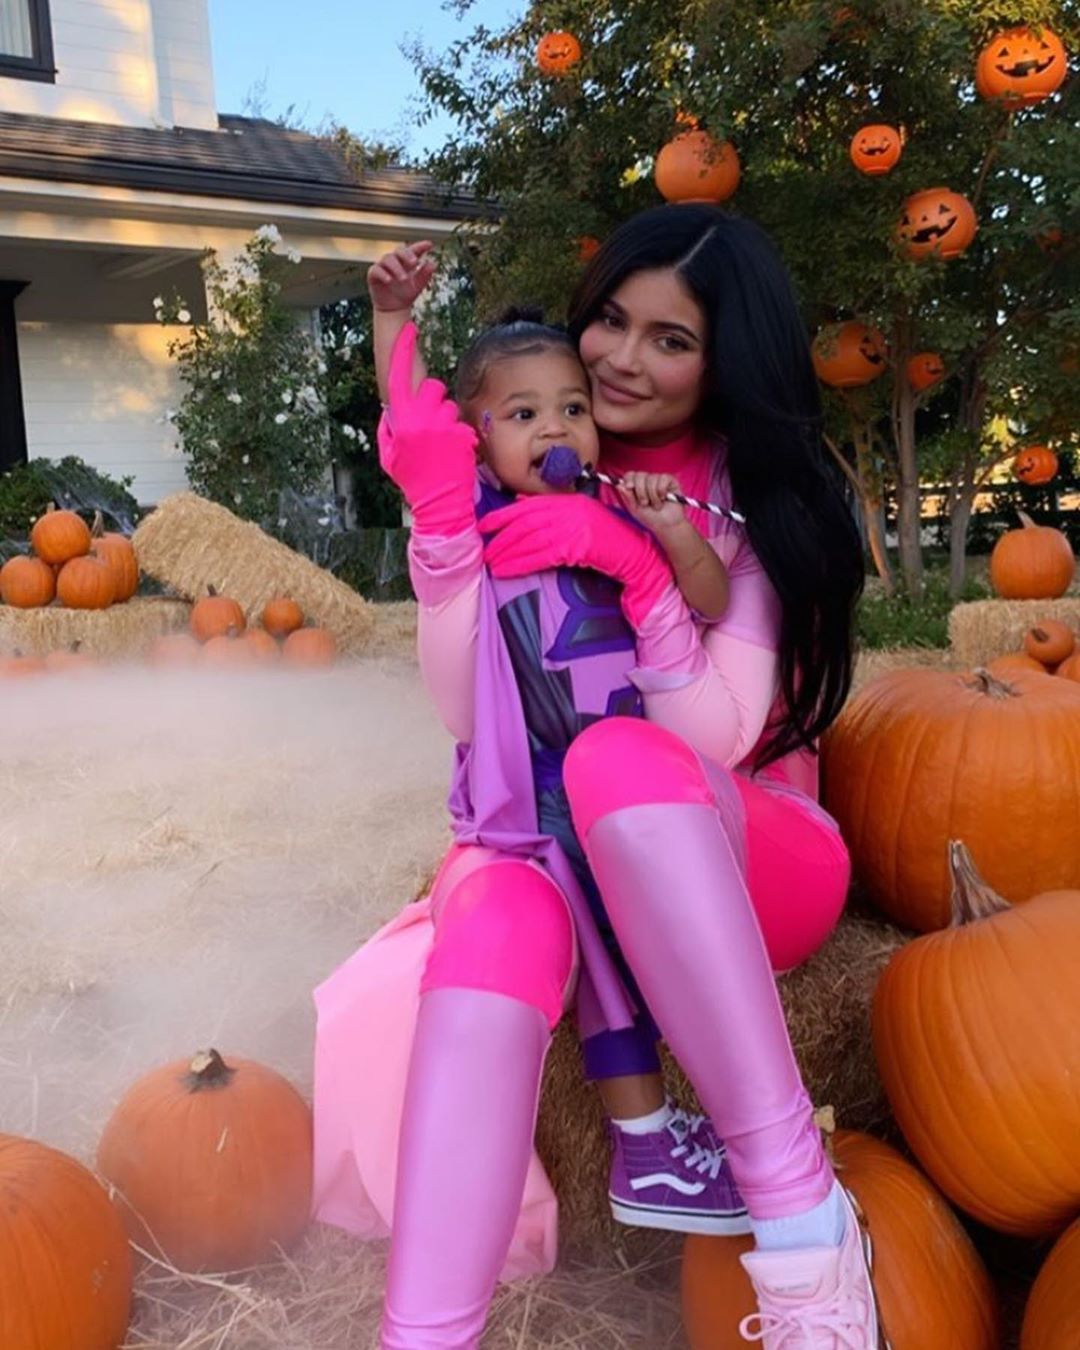 Kylie and Stormi for Halloween in 2020 Kylie jenner